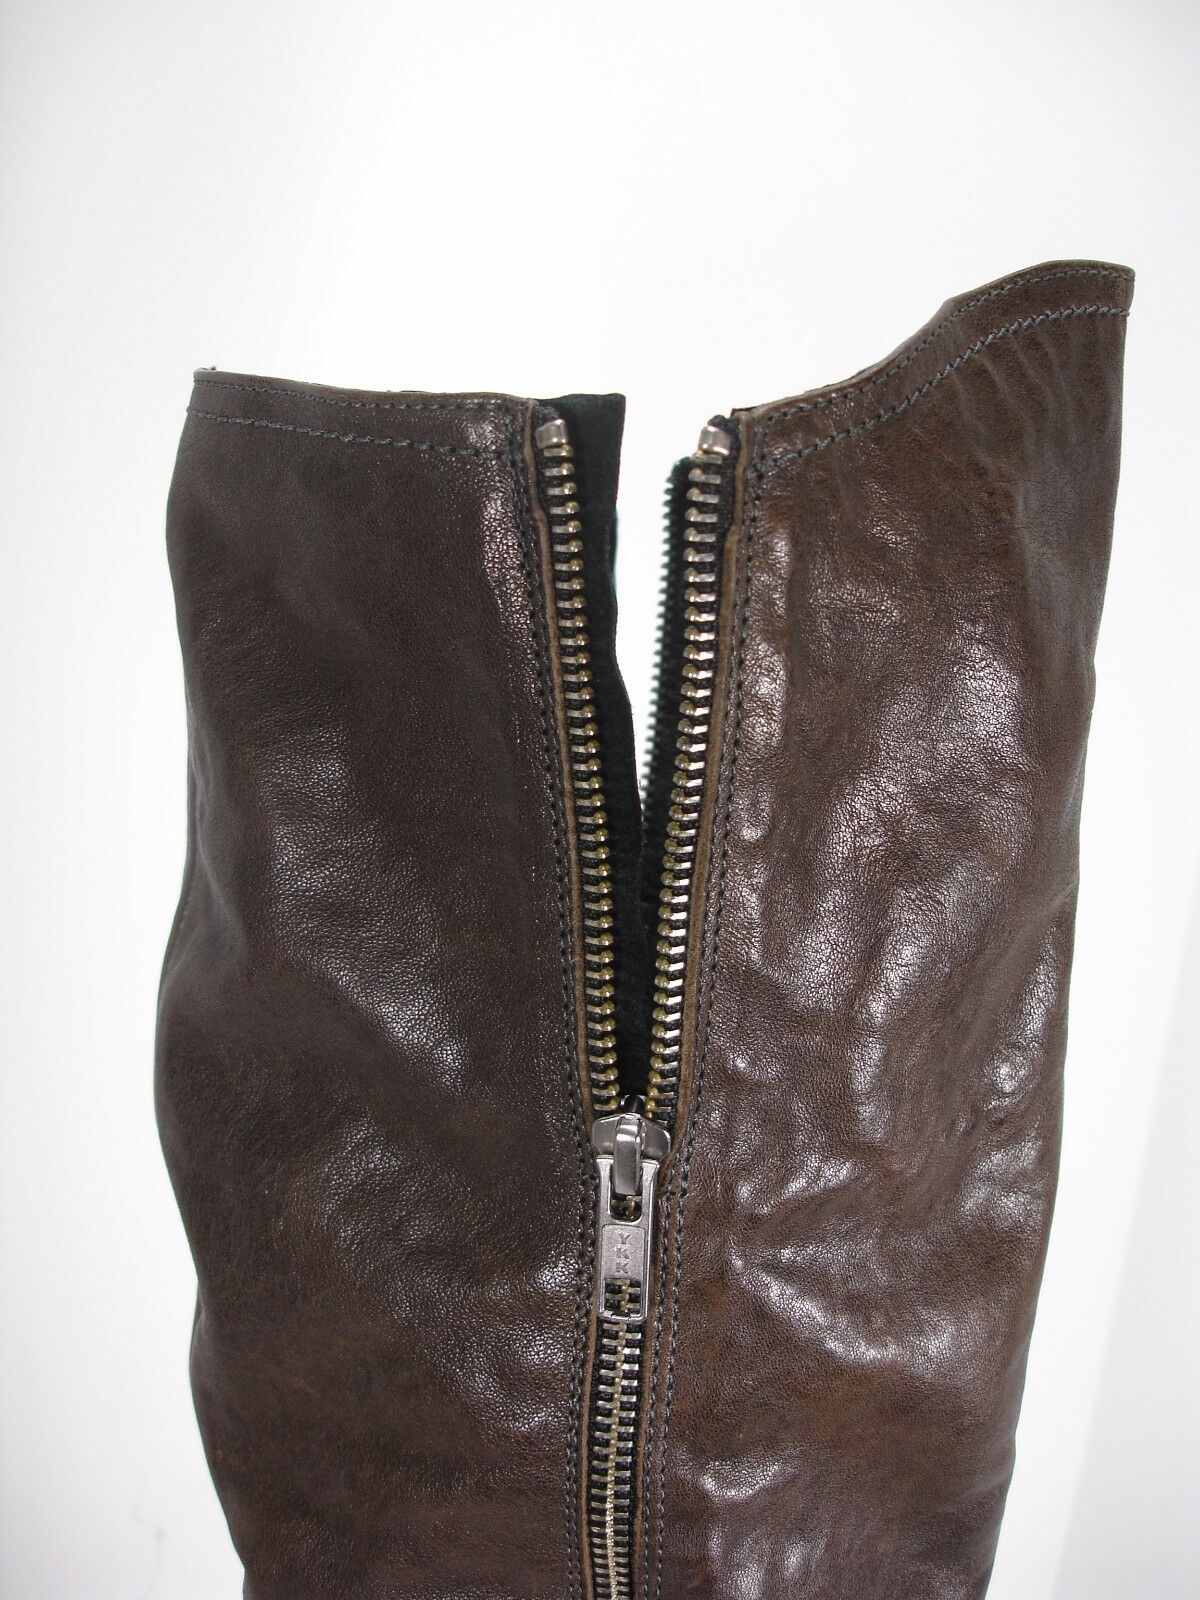 VIC BROWN LEATHER PULL ON 1/4 SIDE WOMEN'S ZIP KNEE HIGH Stiefel WOMEN'S SIDE 38.5 MINT e8504a